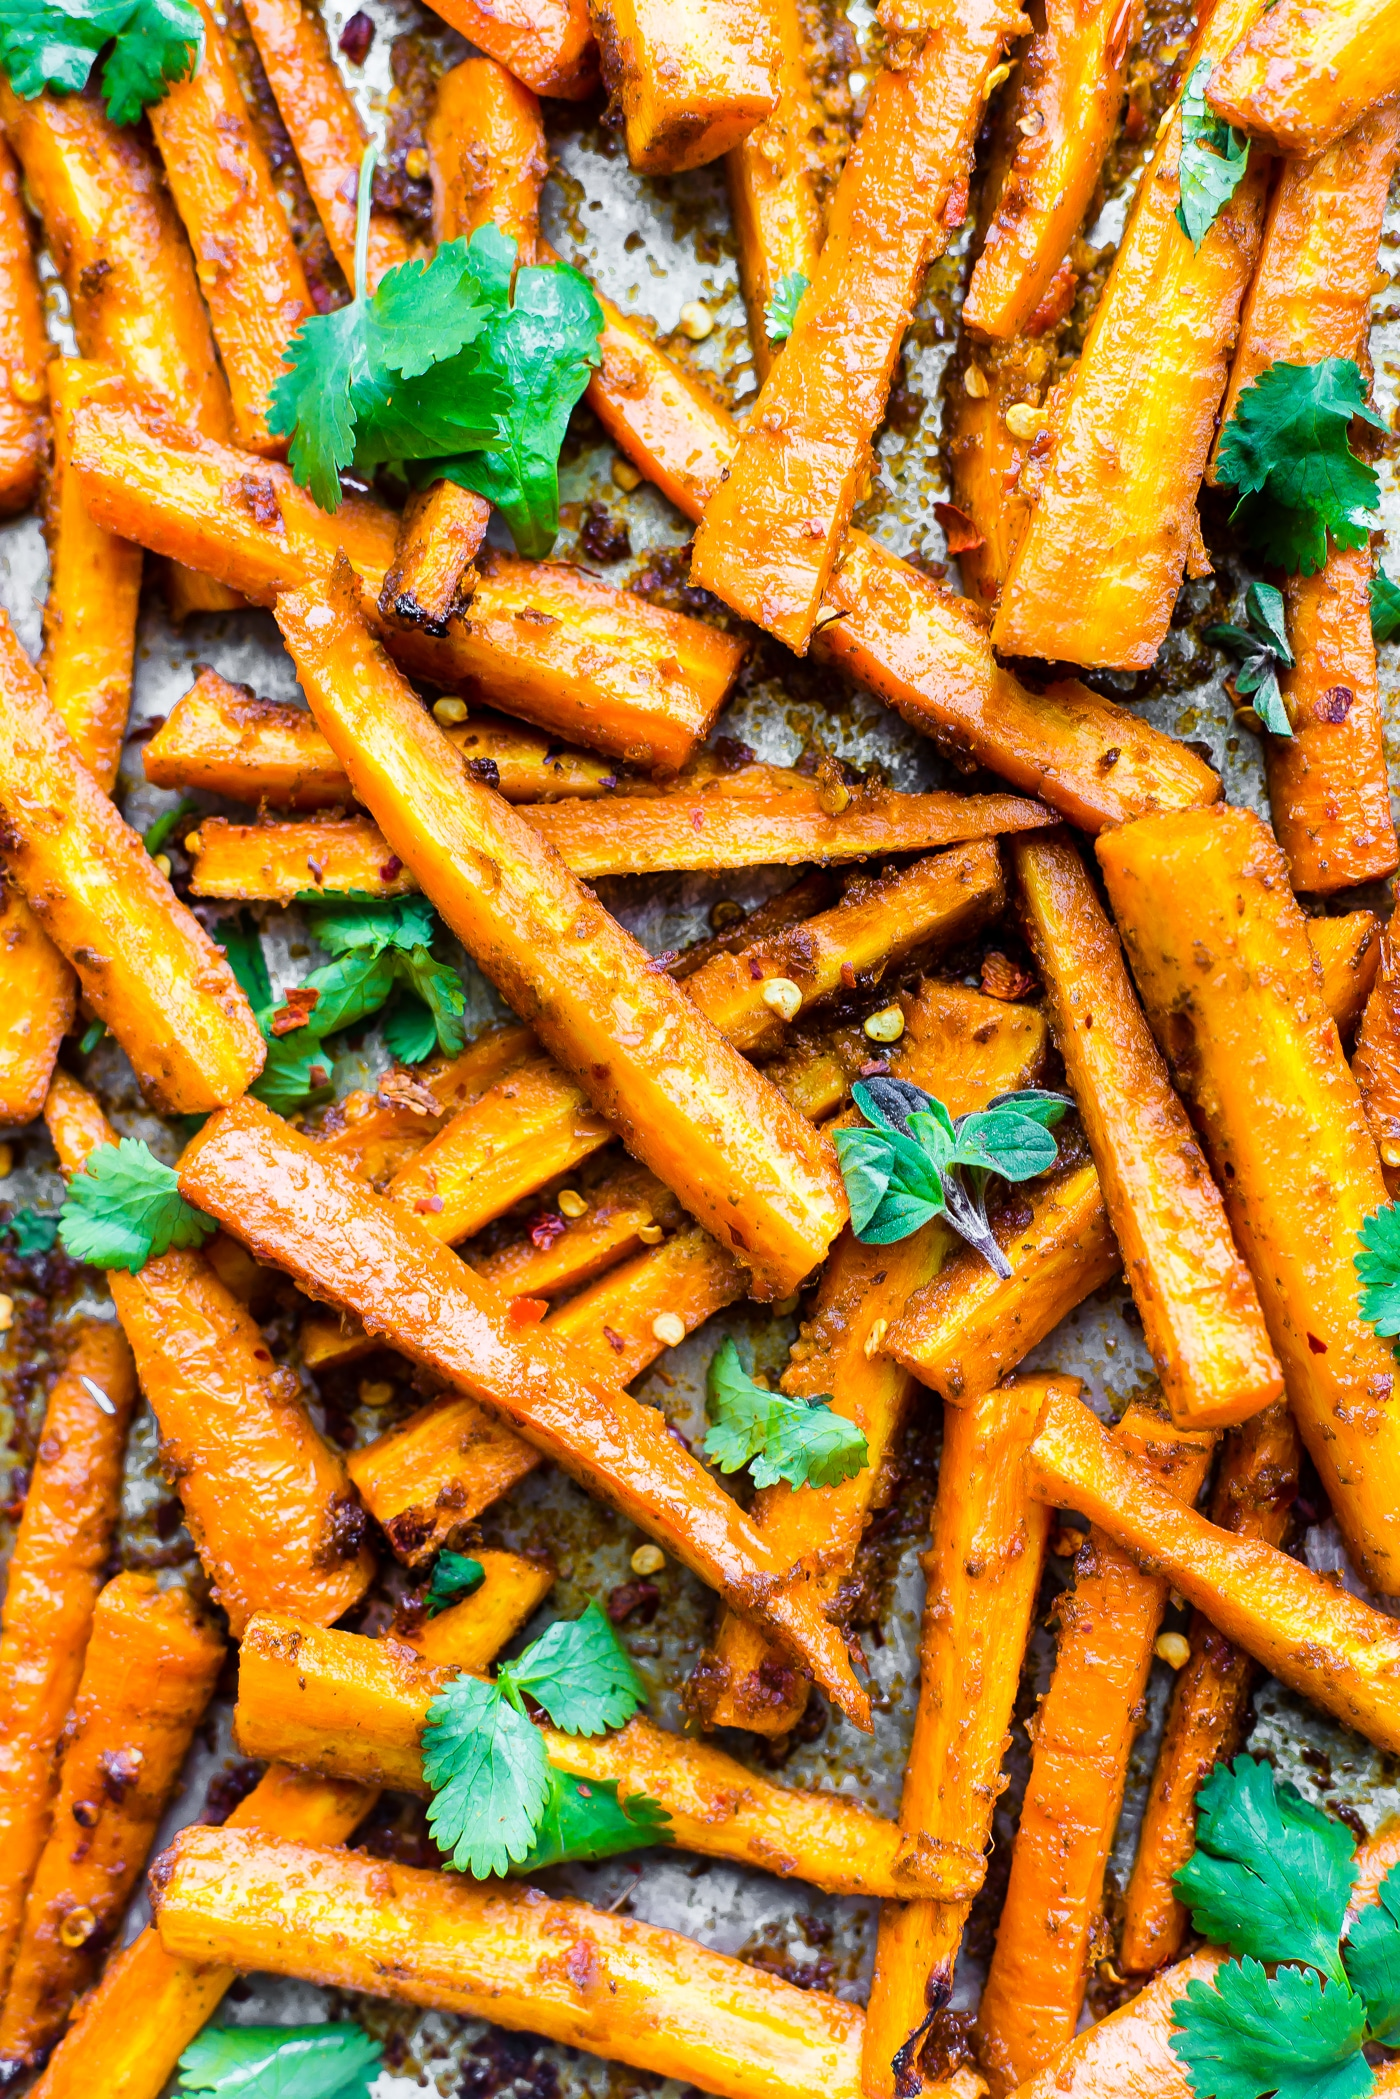 Two . Carrot fries are also underrated. Oven baked carrot fries. I ...